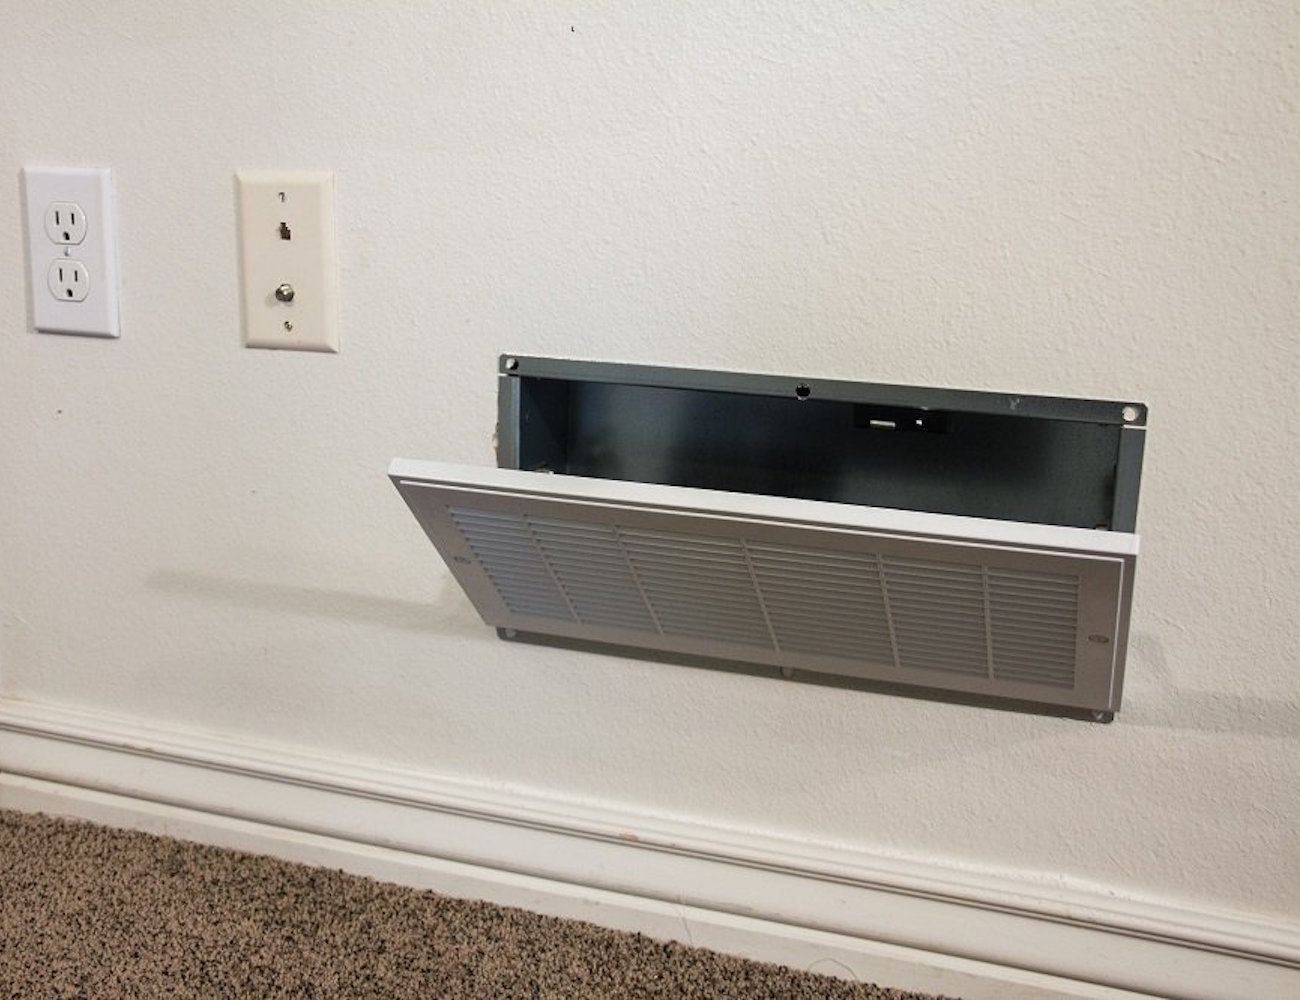 Air Vent Hidden Safe With Rfid Lock 187 Review